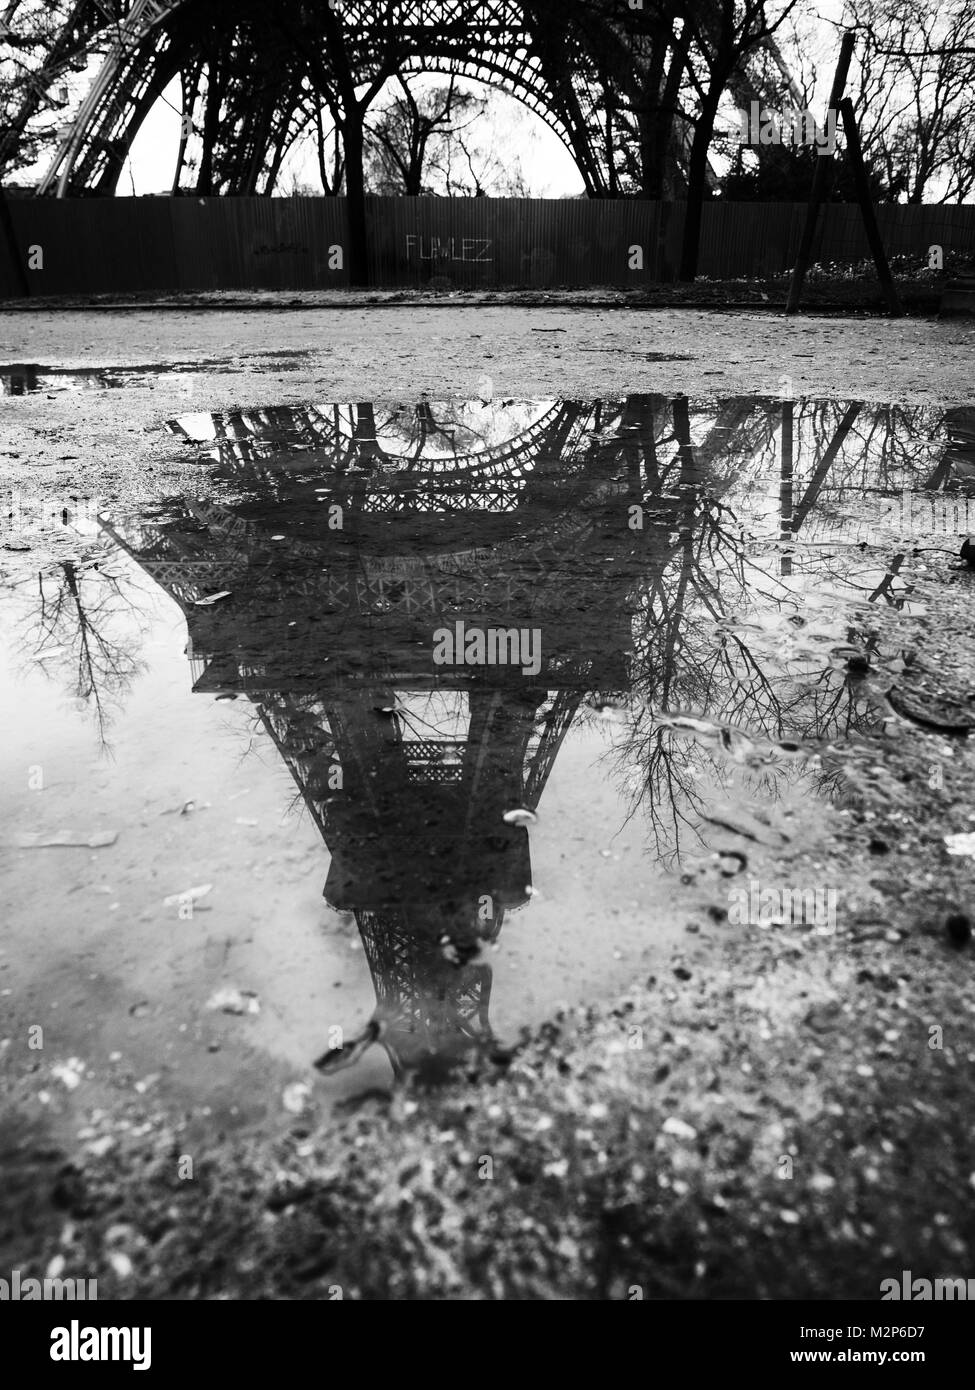 Eiffel Tower reflected in a puddle after a violent storm. - Stock Image